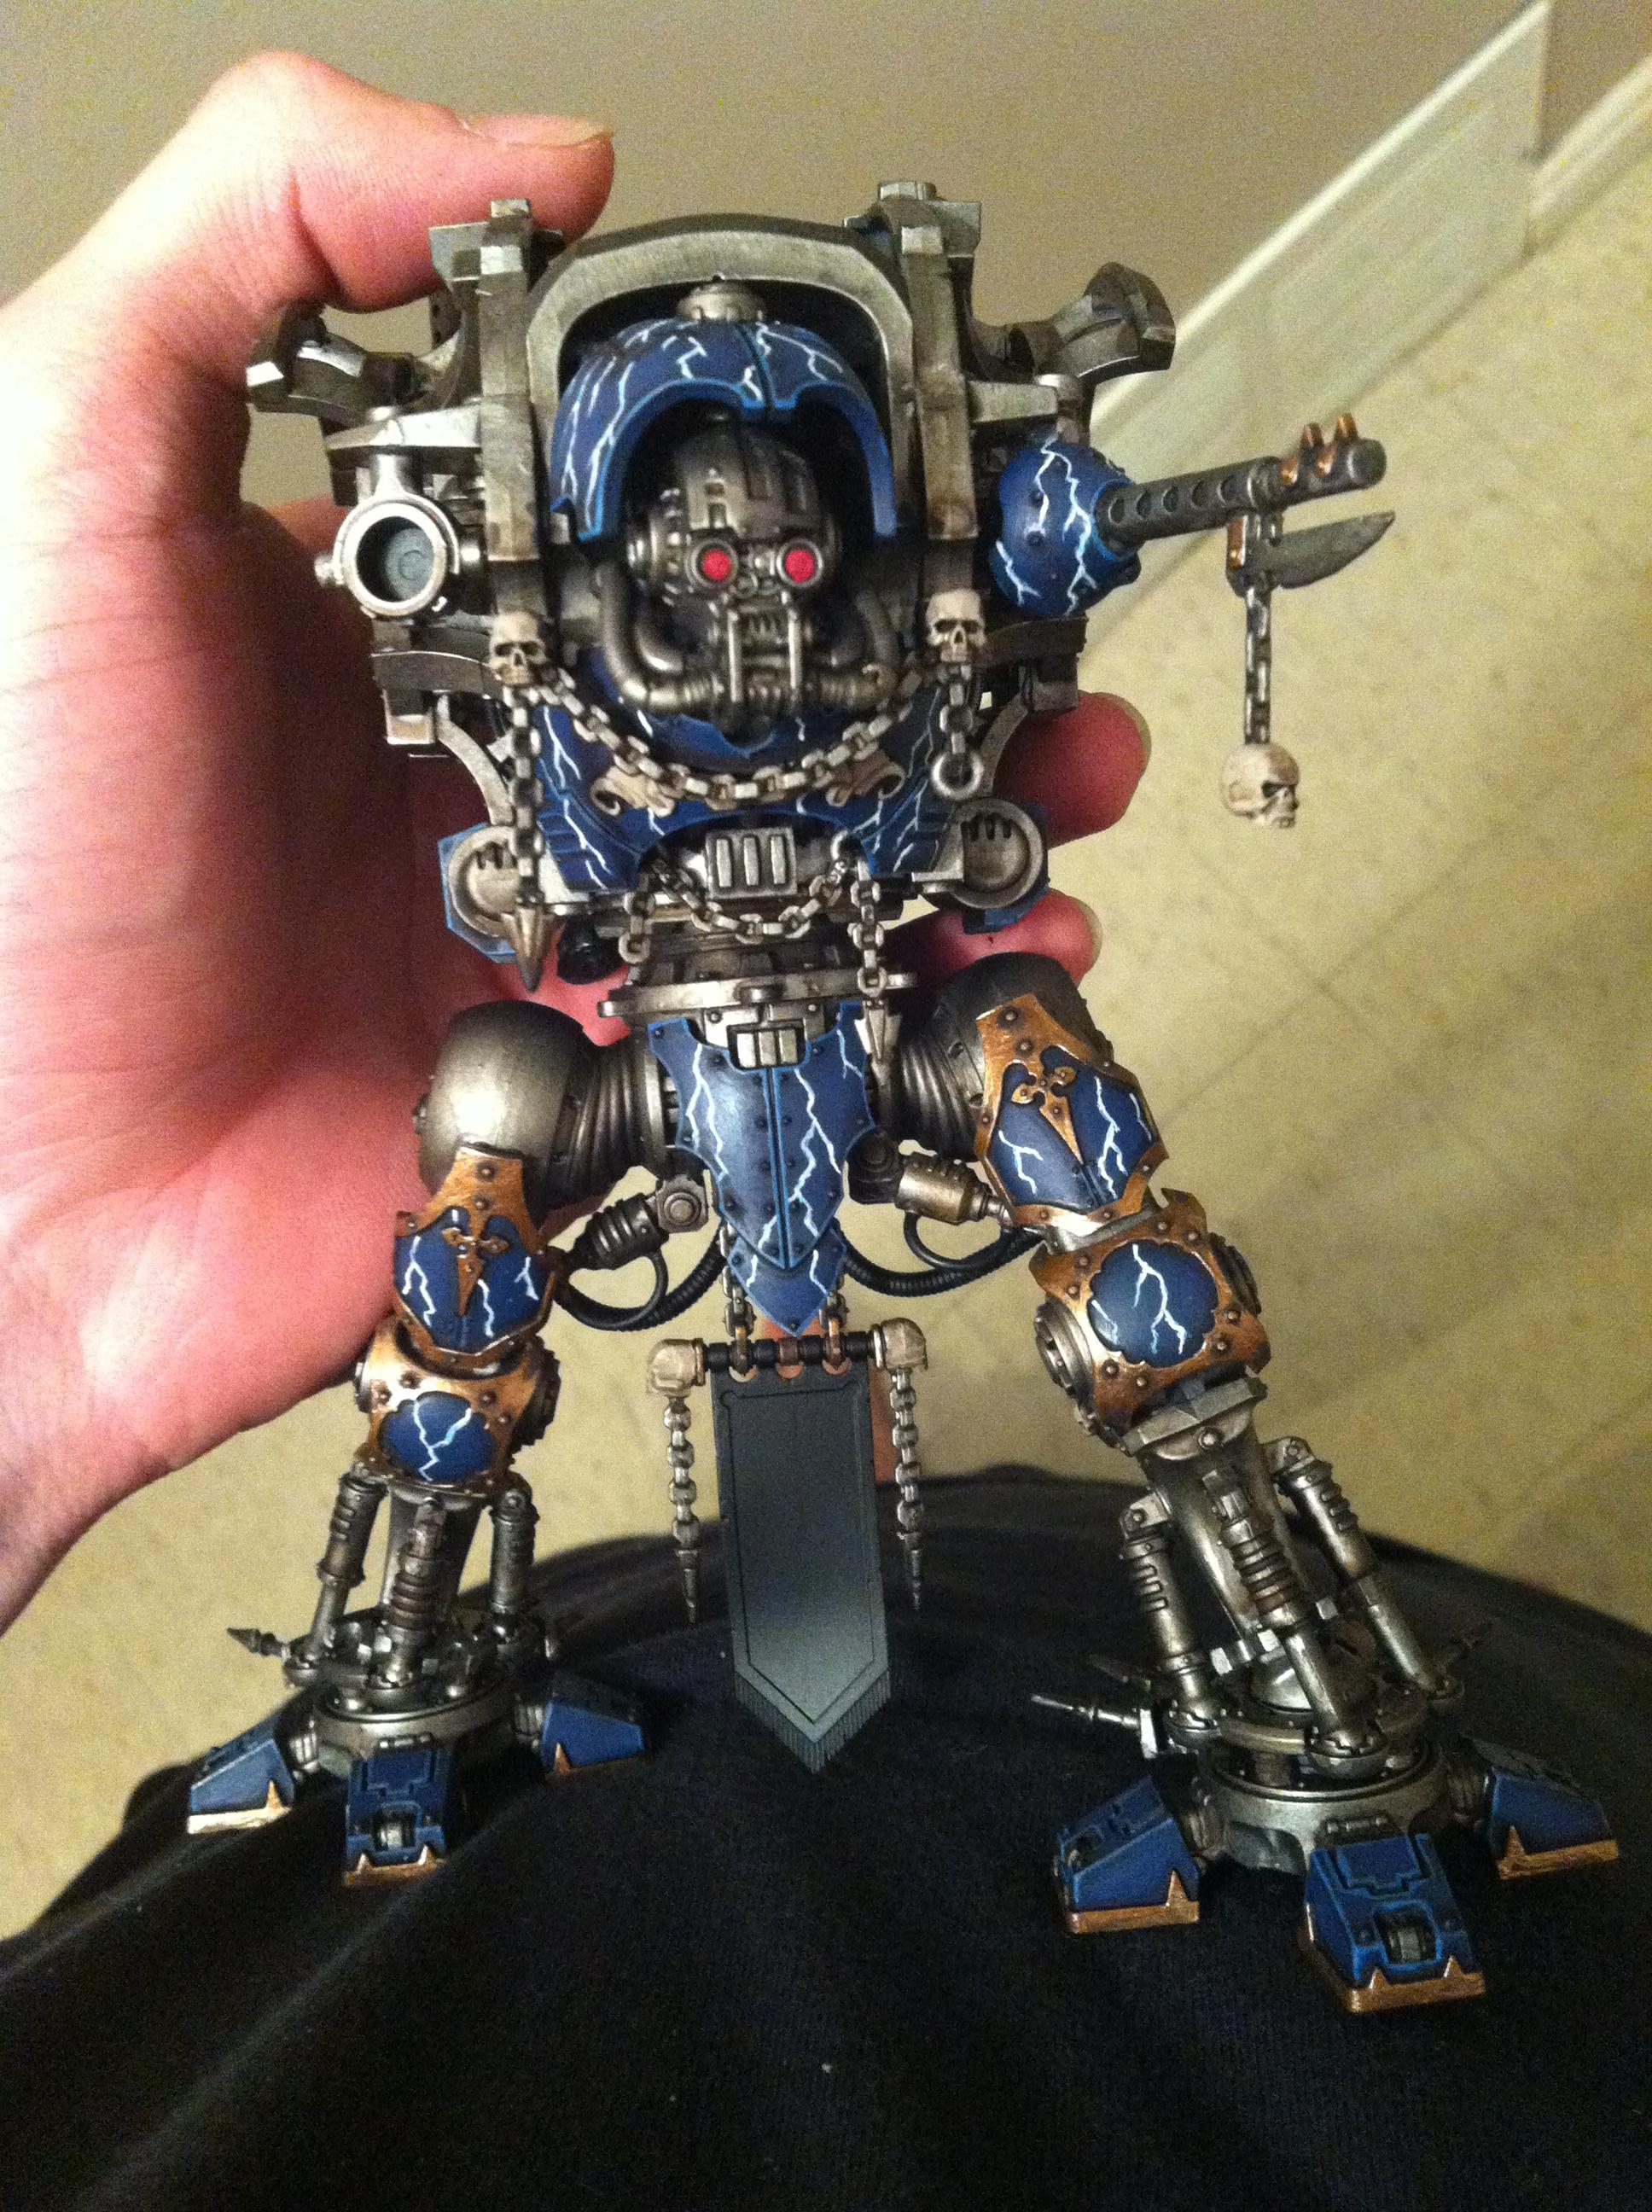 Chaos, Imperial, Knights, Lords, Night, Night Lords, Nightlord, Nightlords